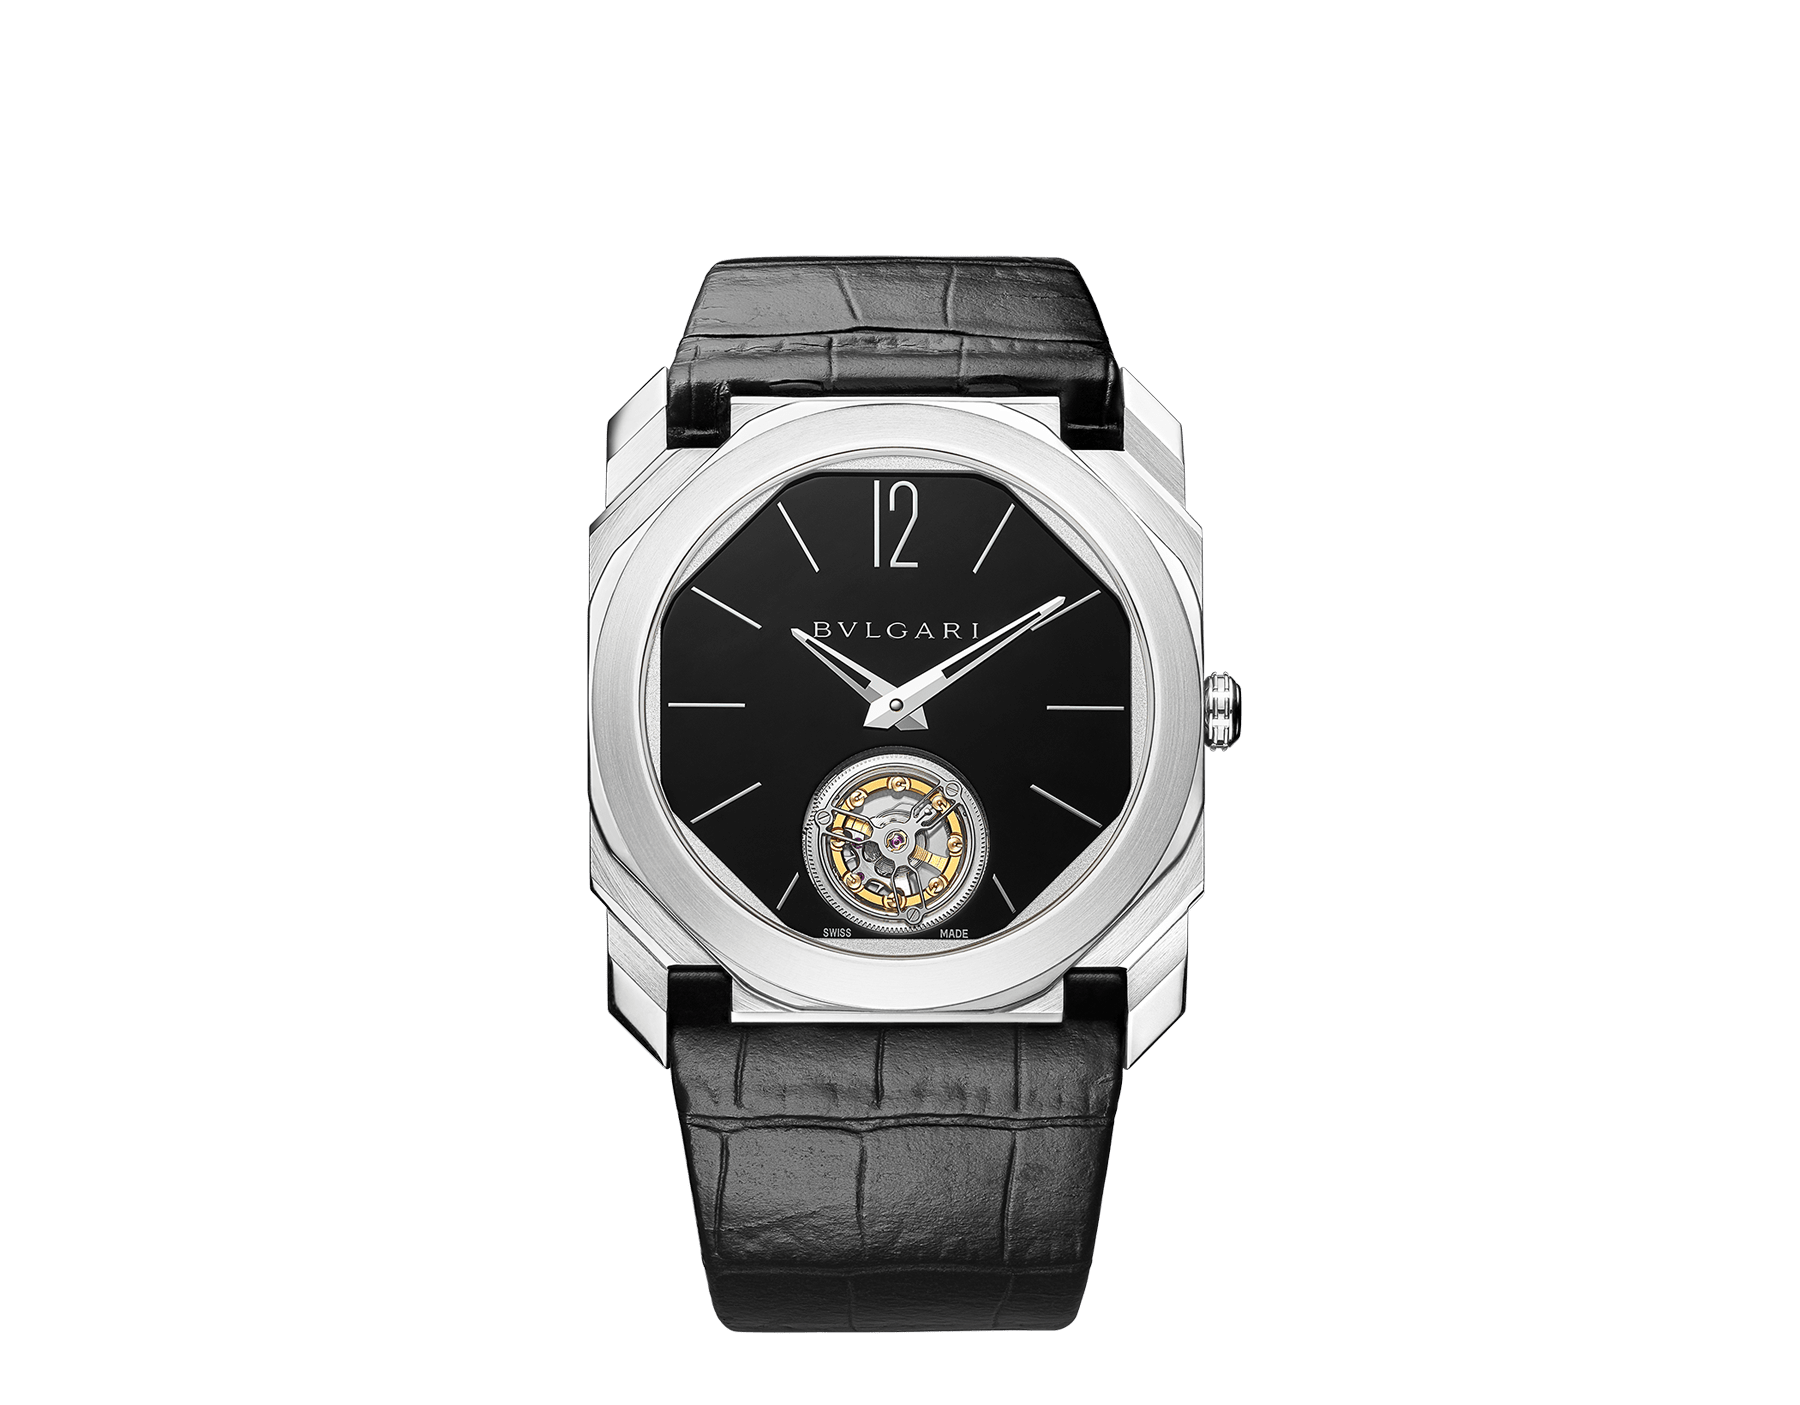 Octo Finissimo Tourbillon watch with extra thin mechanical manufacture movement and manual winding, platinum case, black lacquered dial and black alligator bracelet. 102138 image 1